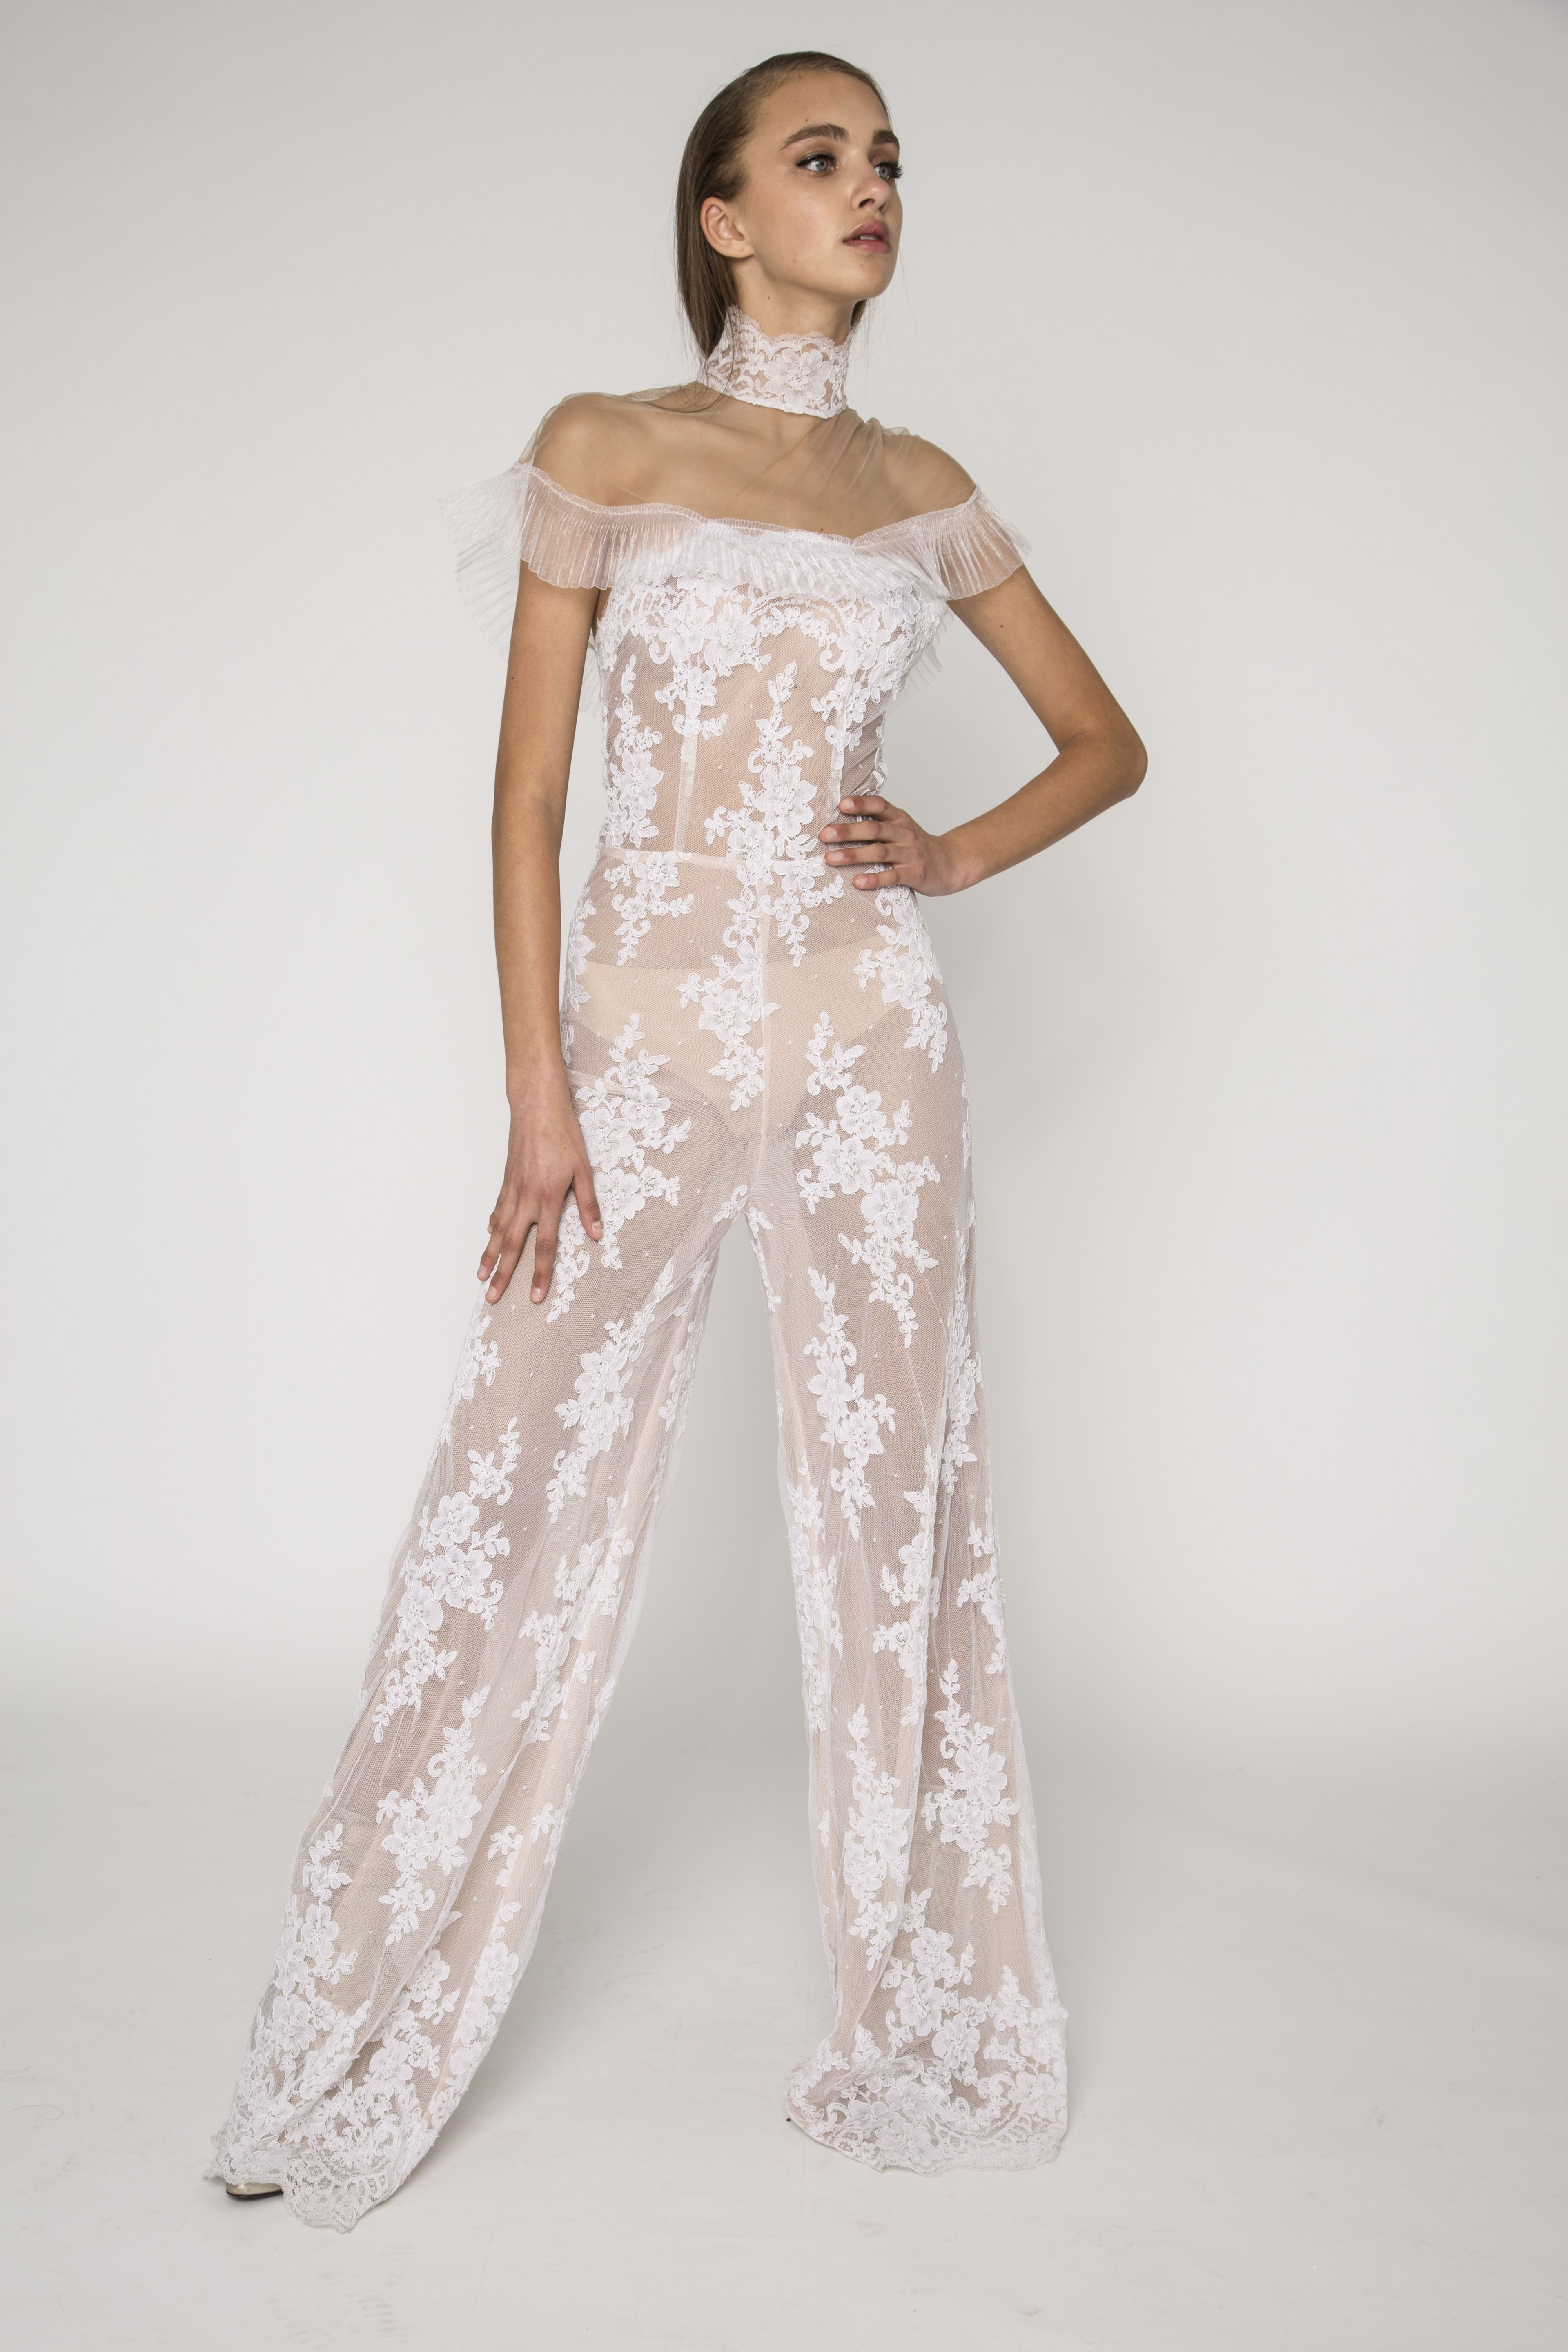 50ede59fd228 Vintage lace embellished sheer jumpsuit with off the shoulder pleated  japanese organza detailing and lace high